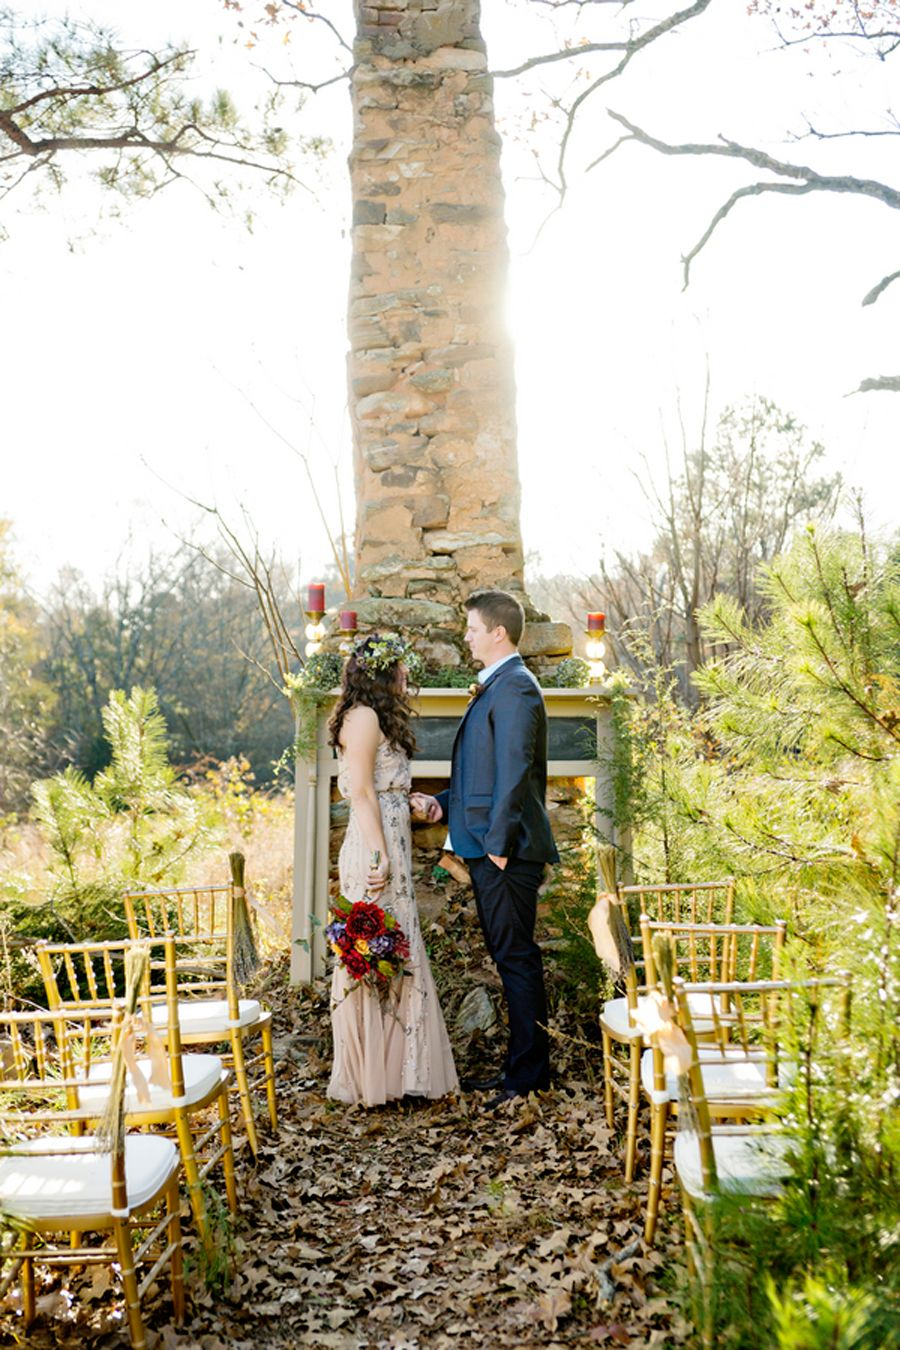 Fall outside wedding decoration ideas  Boho glam inspired outdoor fall wedding ideas Photography by Andie